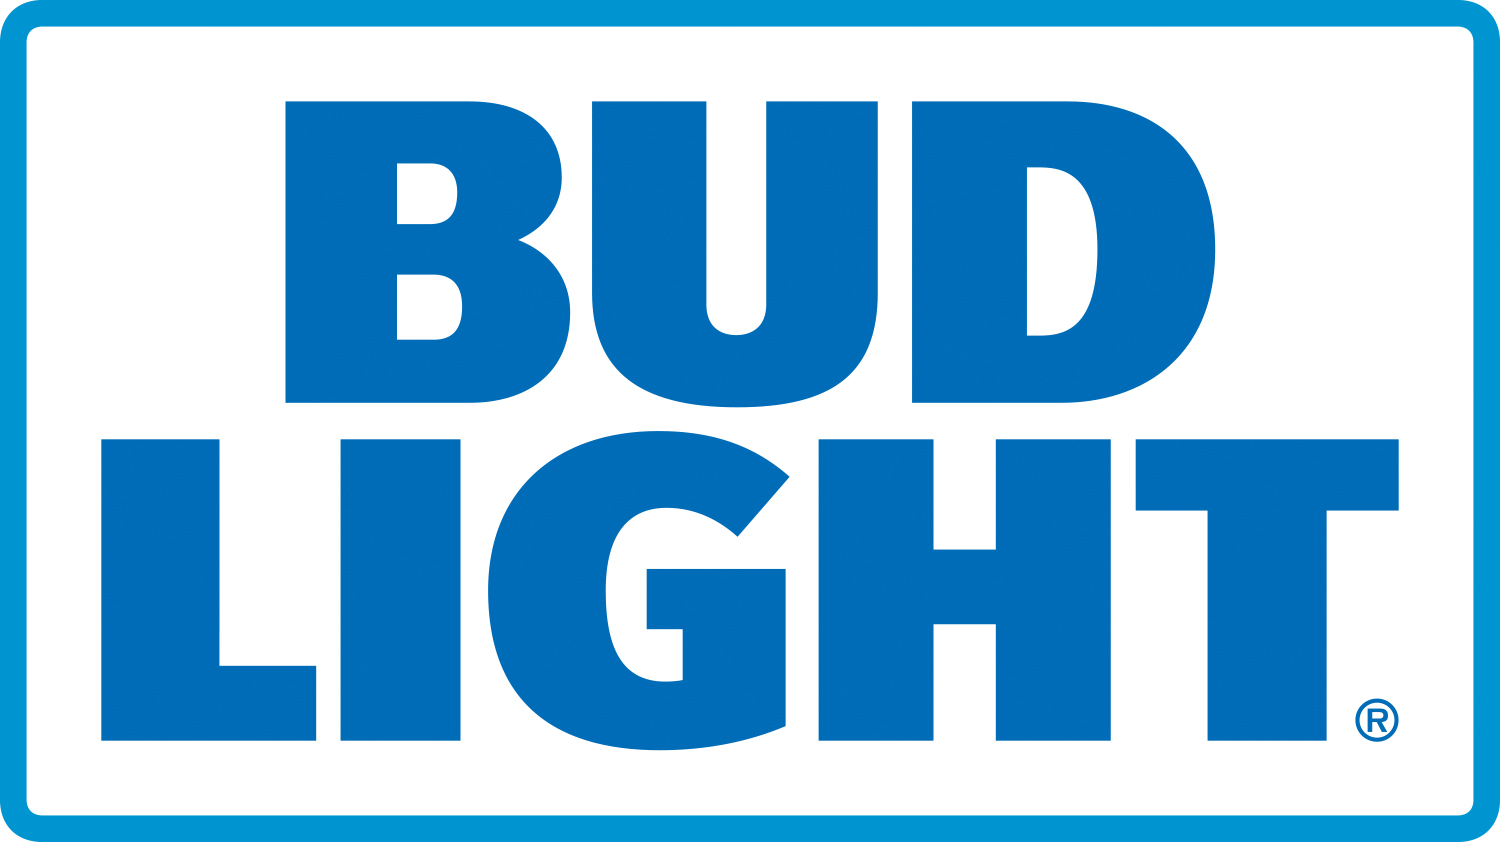 New Bud Light logo